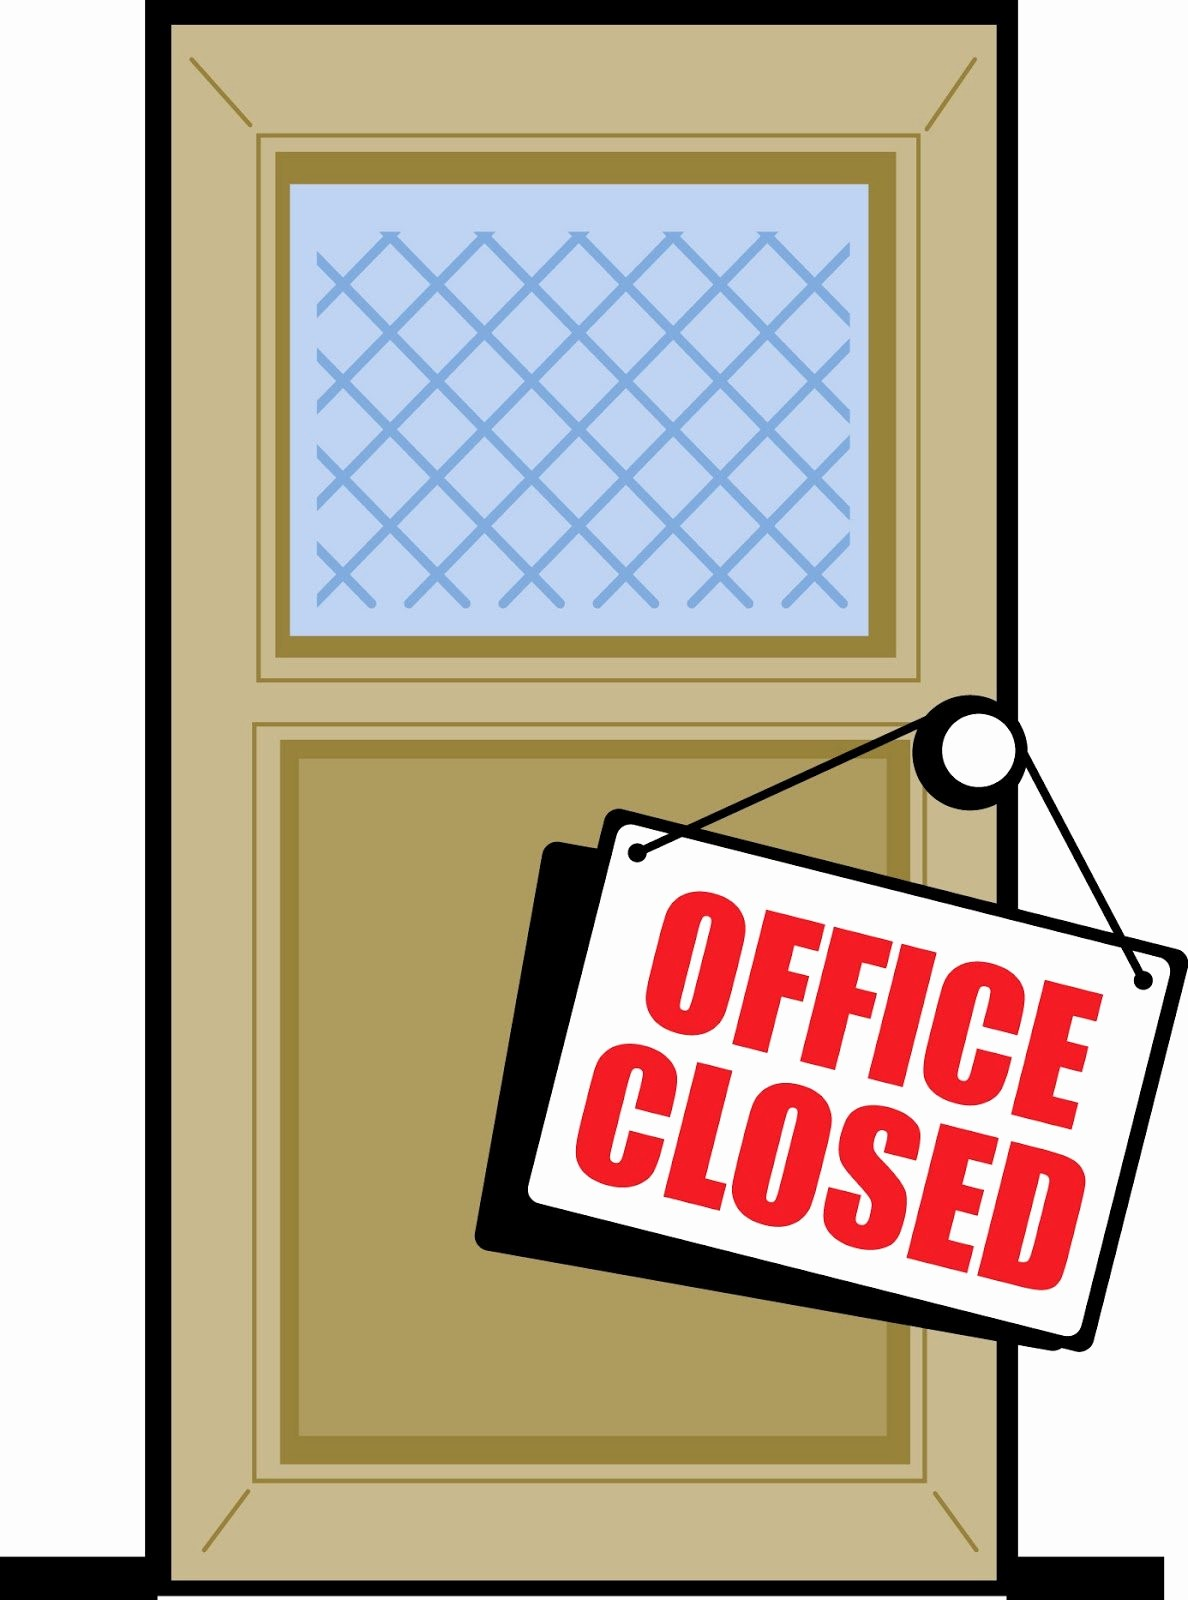 Office Closed for Holiday Sign Unique Template for Holiday Fice Closed